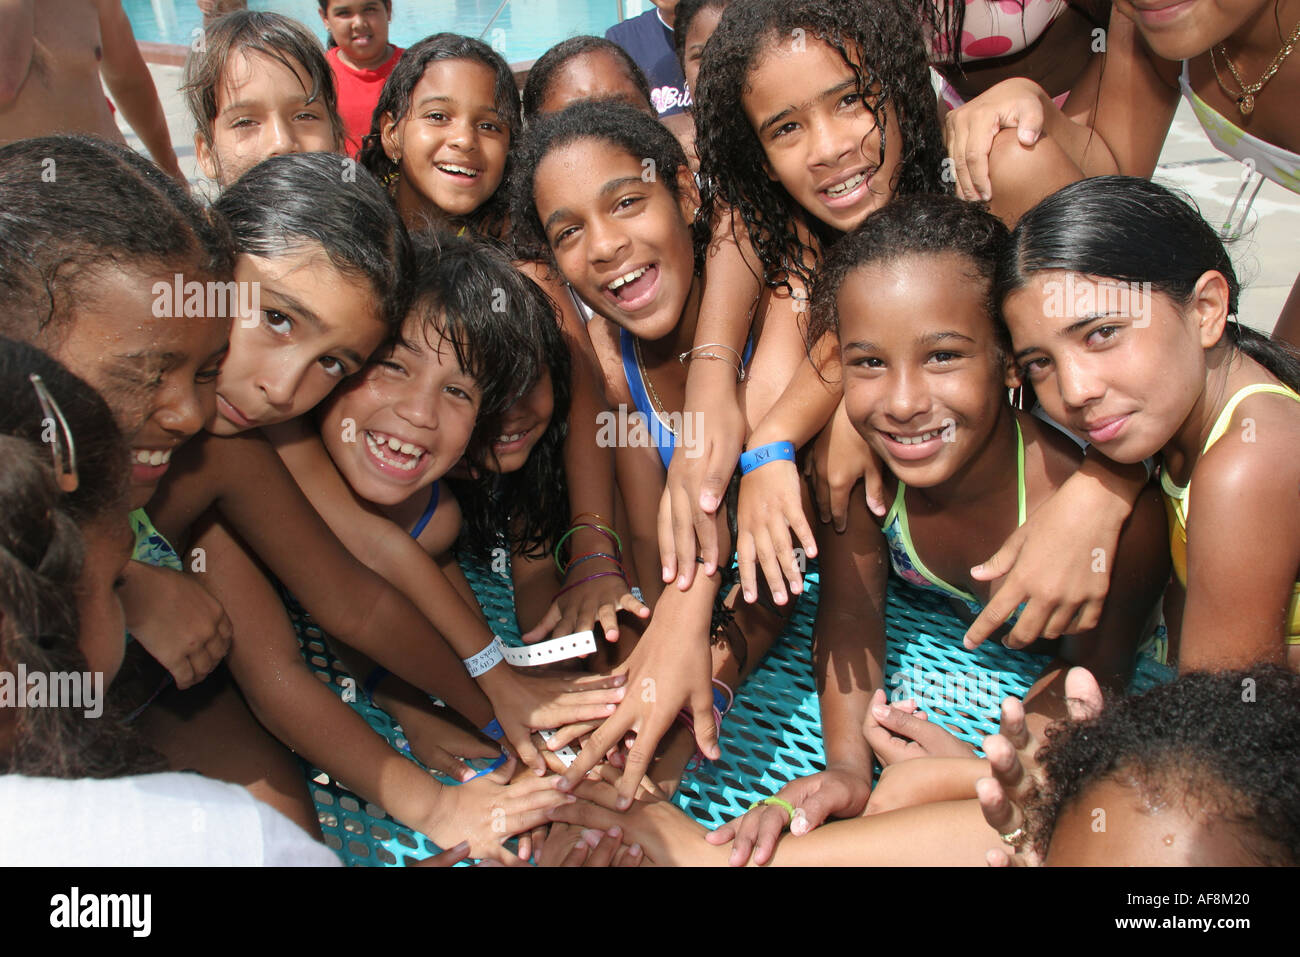 Miami Florida Hadley Park Miami Dade County Parks Summer Camp Program Stock Photo 4527135 Alamy